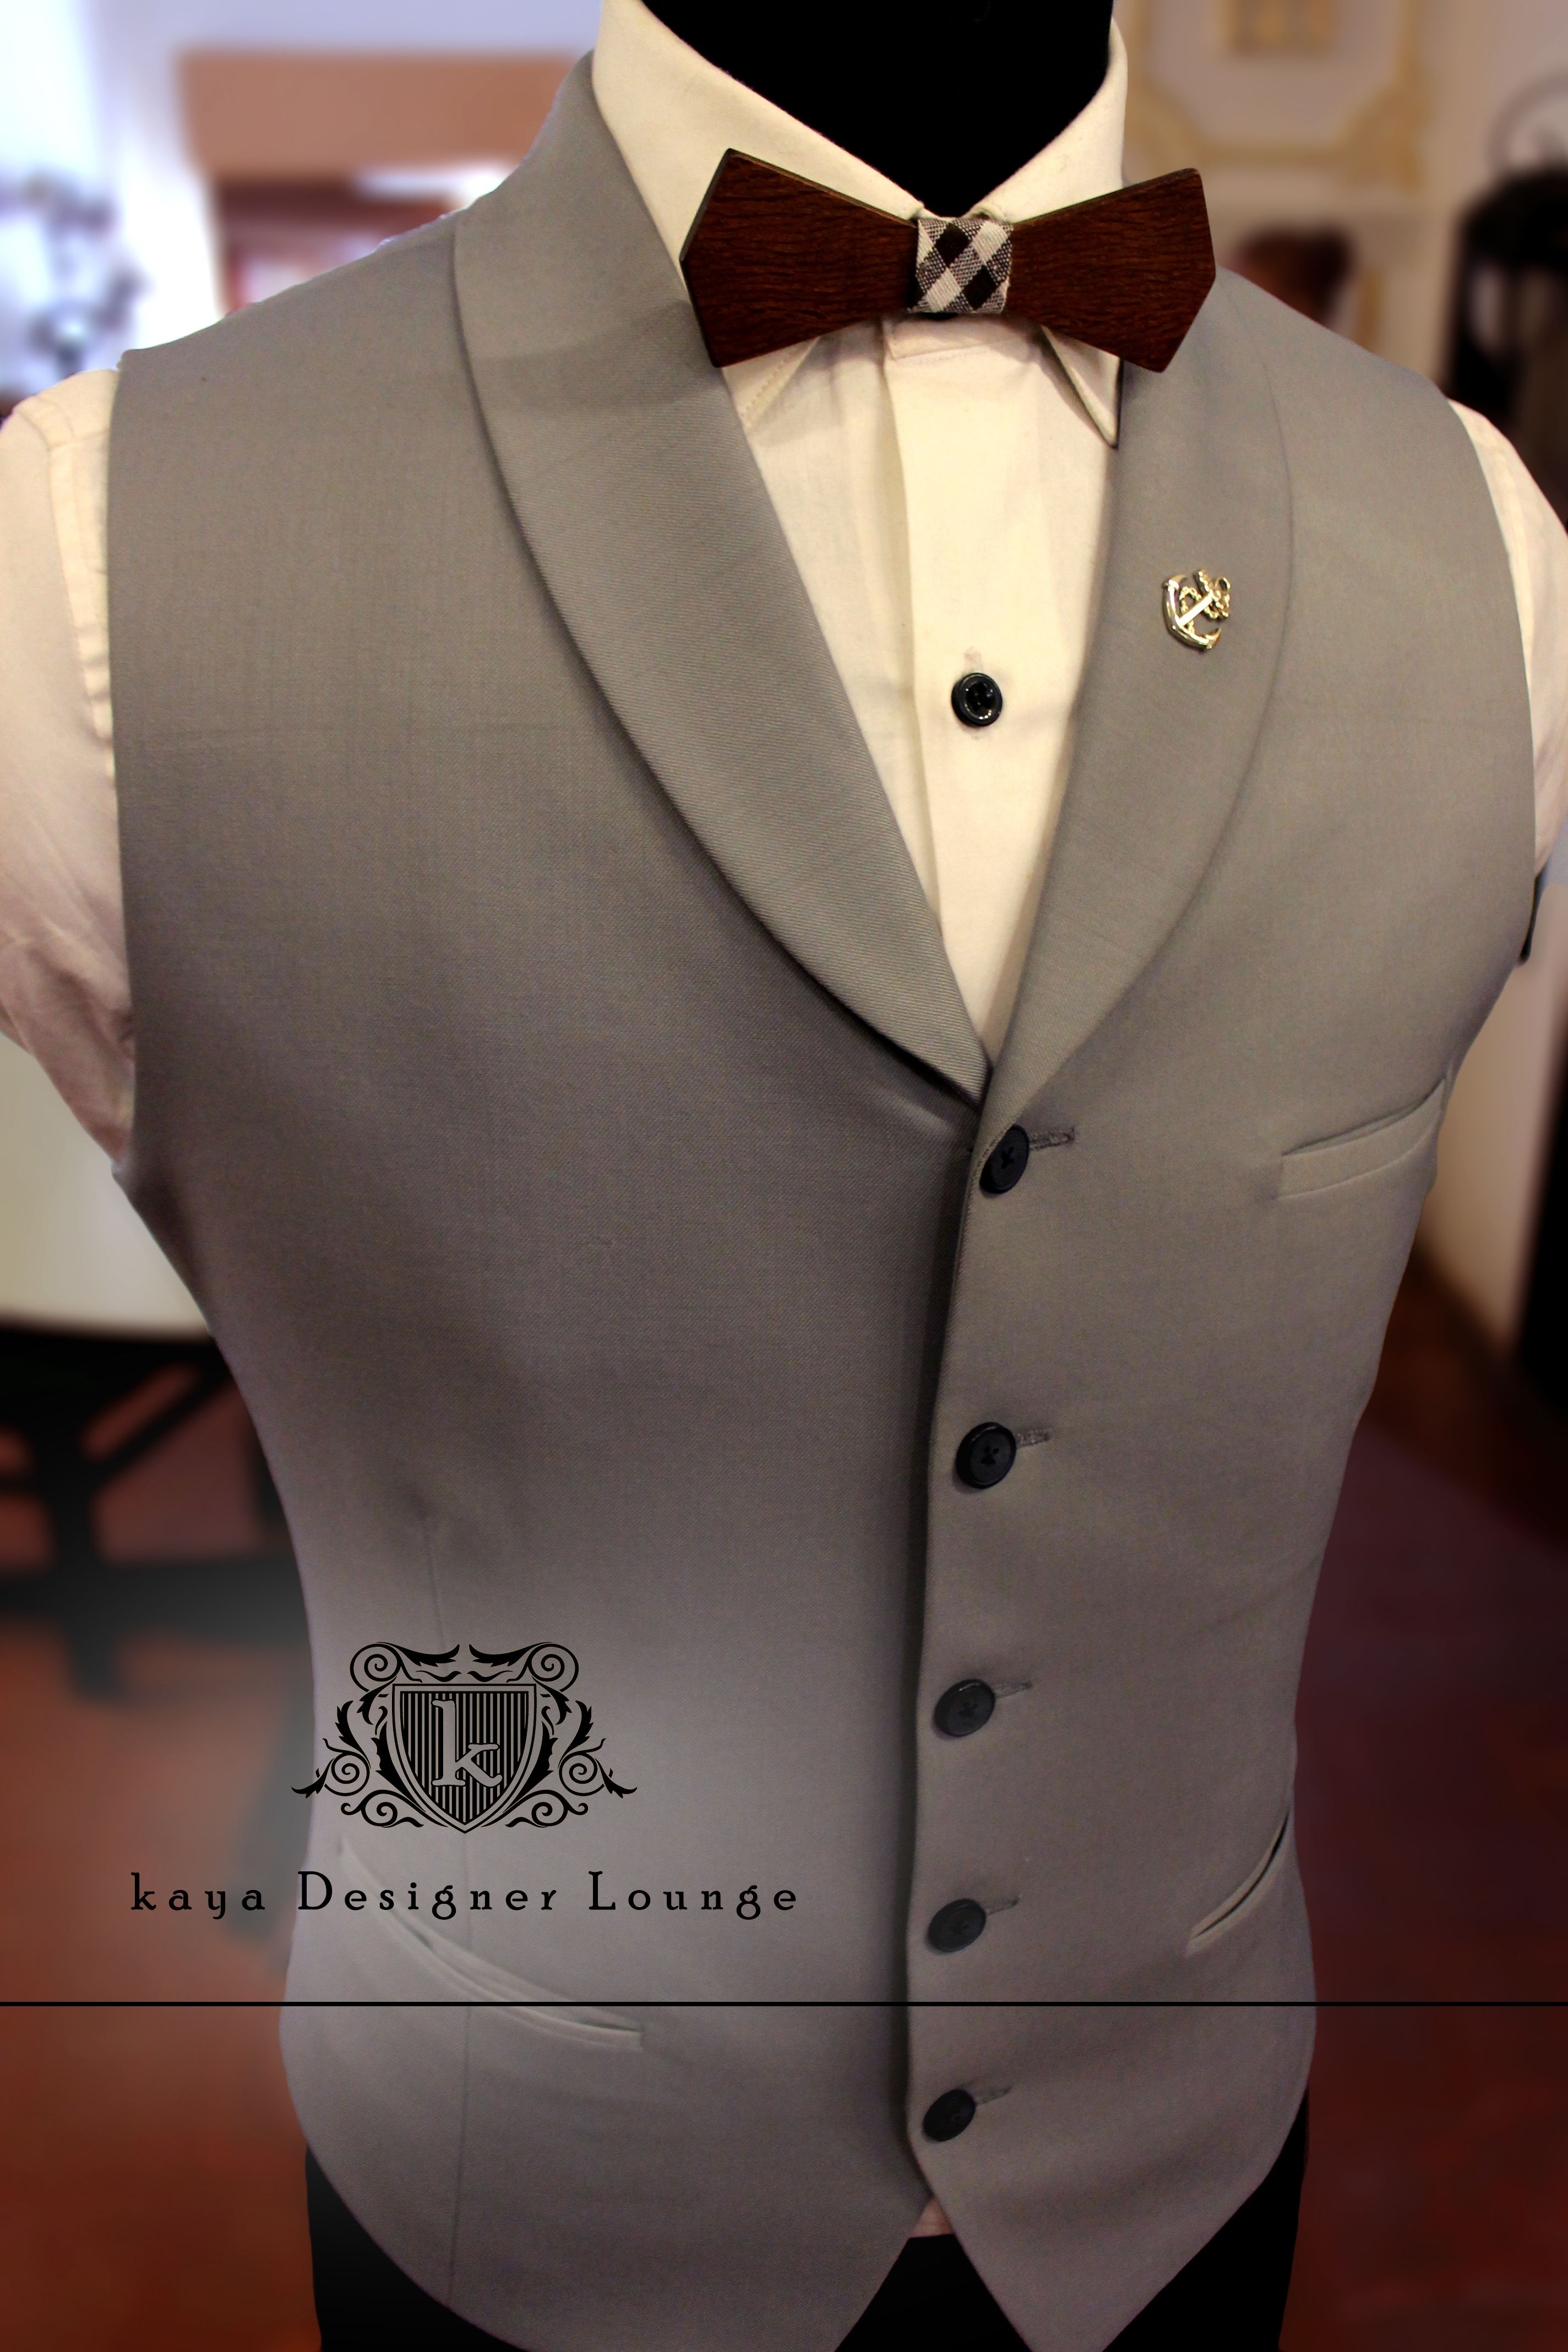 8c667525a4b Waistcoat Wooden Bow Tuxedo Cocktail Outfit kaya Designer Lounge kdl ...